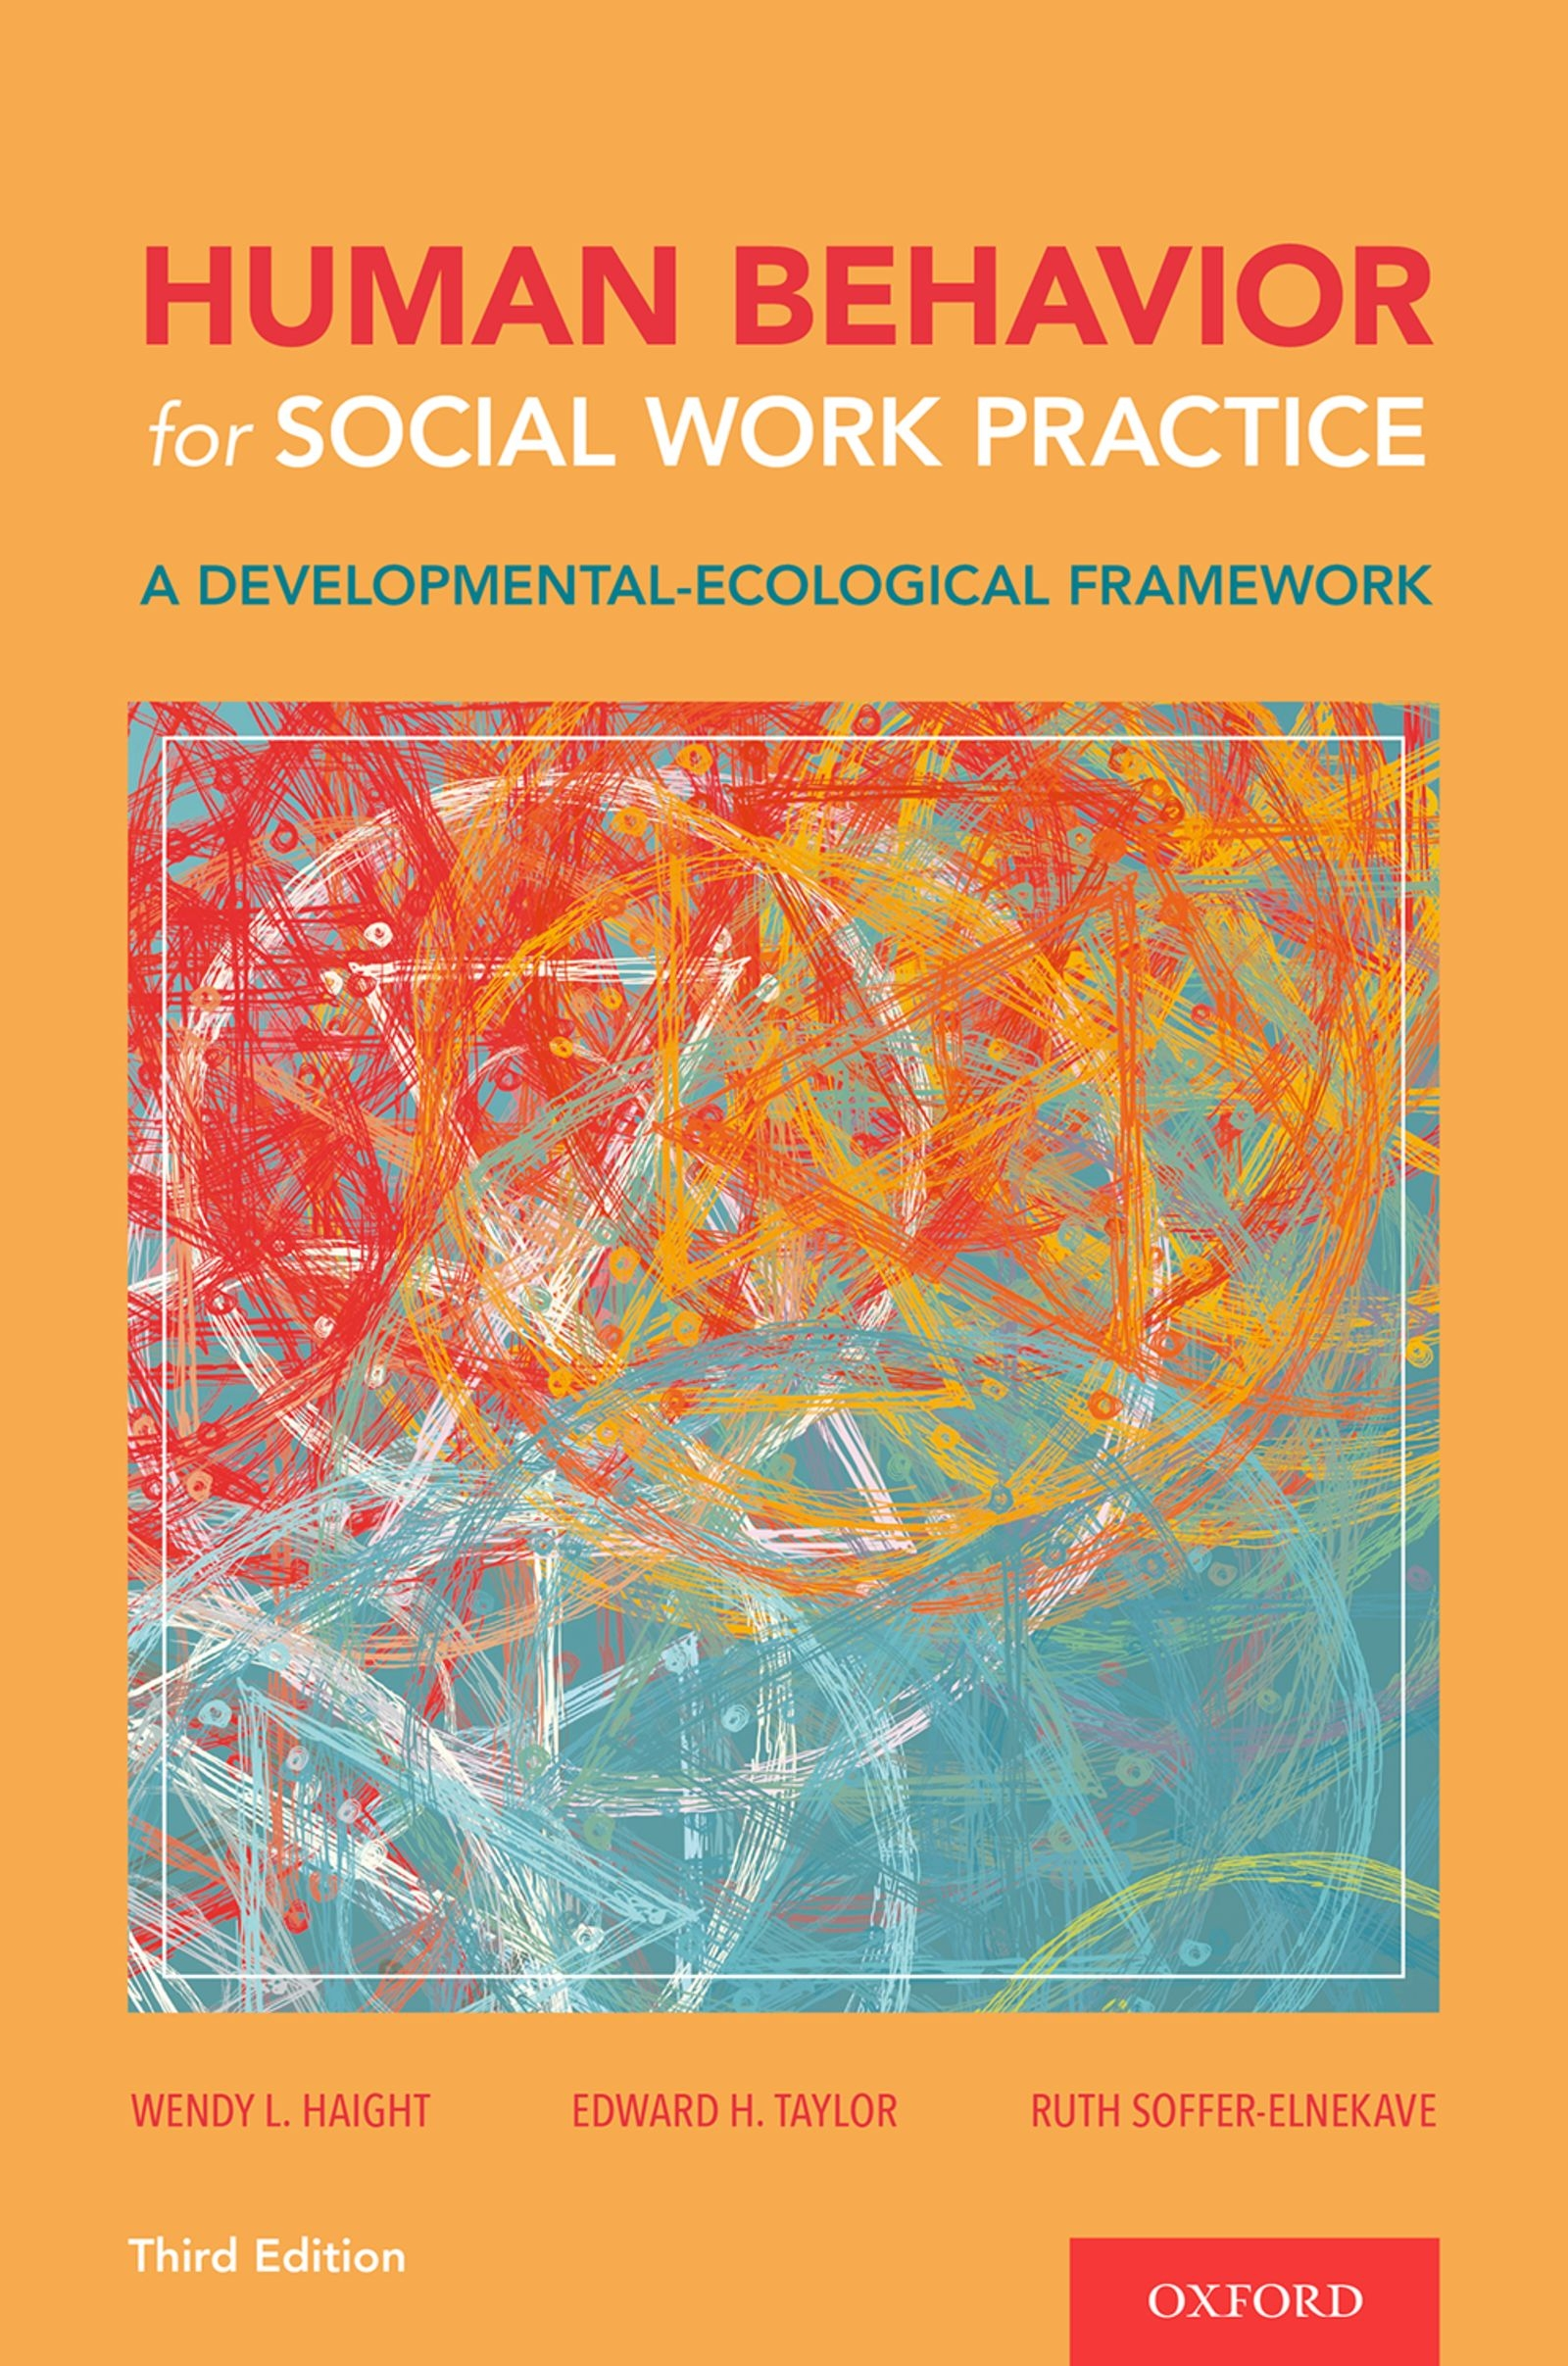 Human Behavior for Social Work Practice 3e Instructor Resources